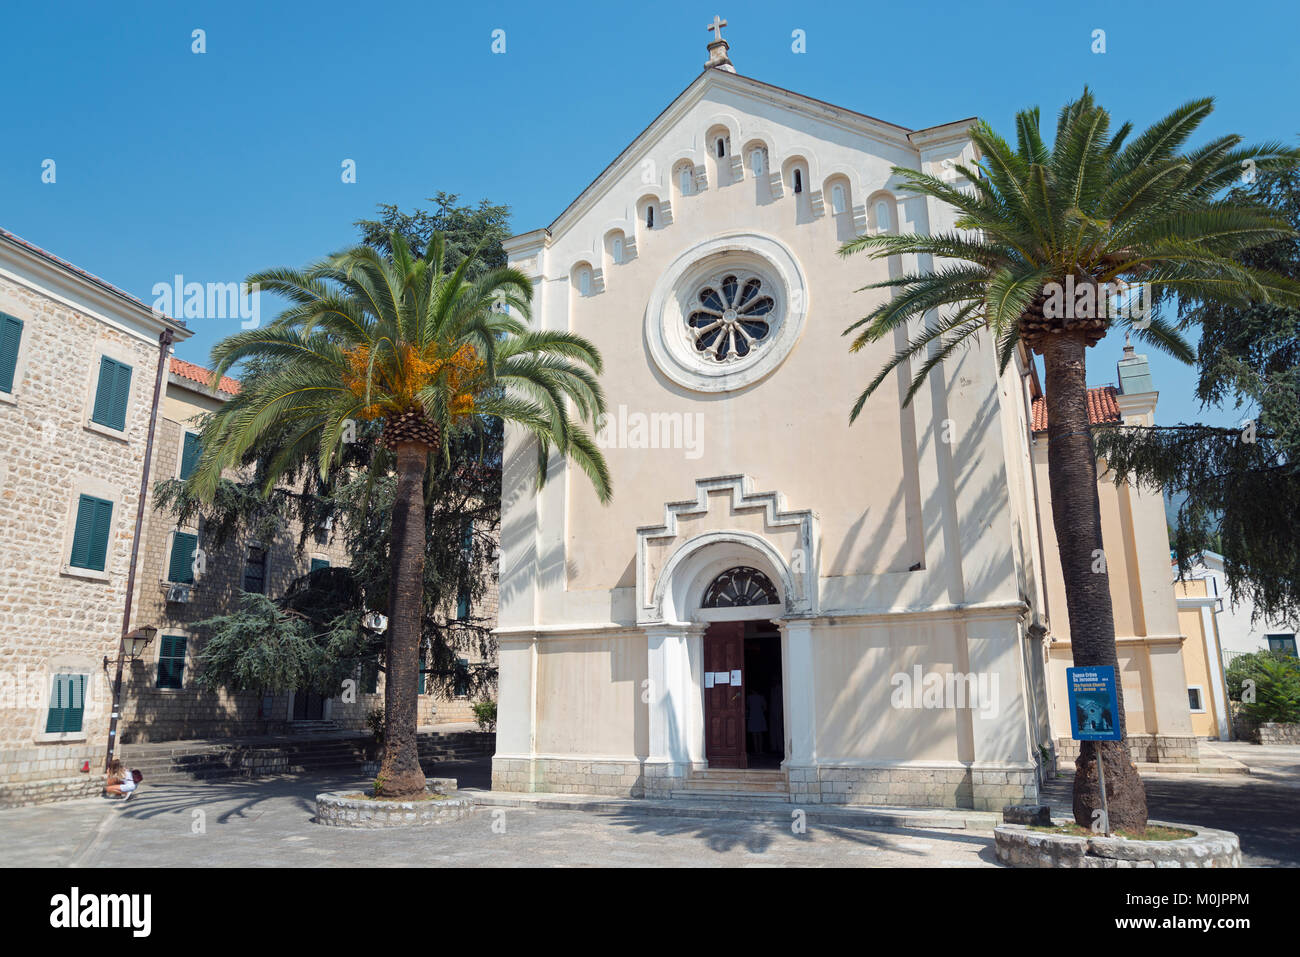 Church of Sveti Jeronima, Herceg Novi, Montenegro - Stock Image